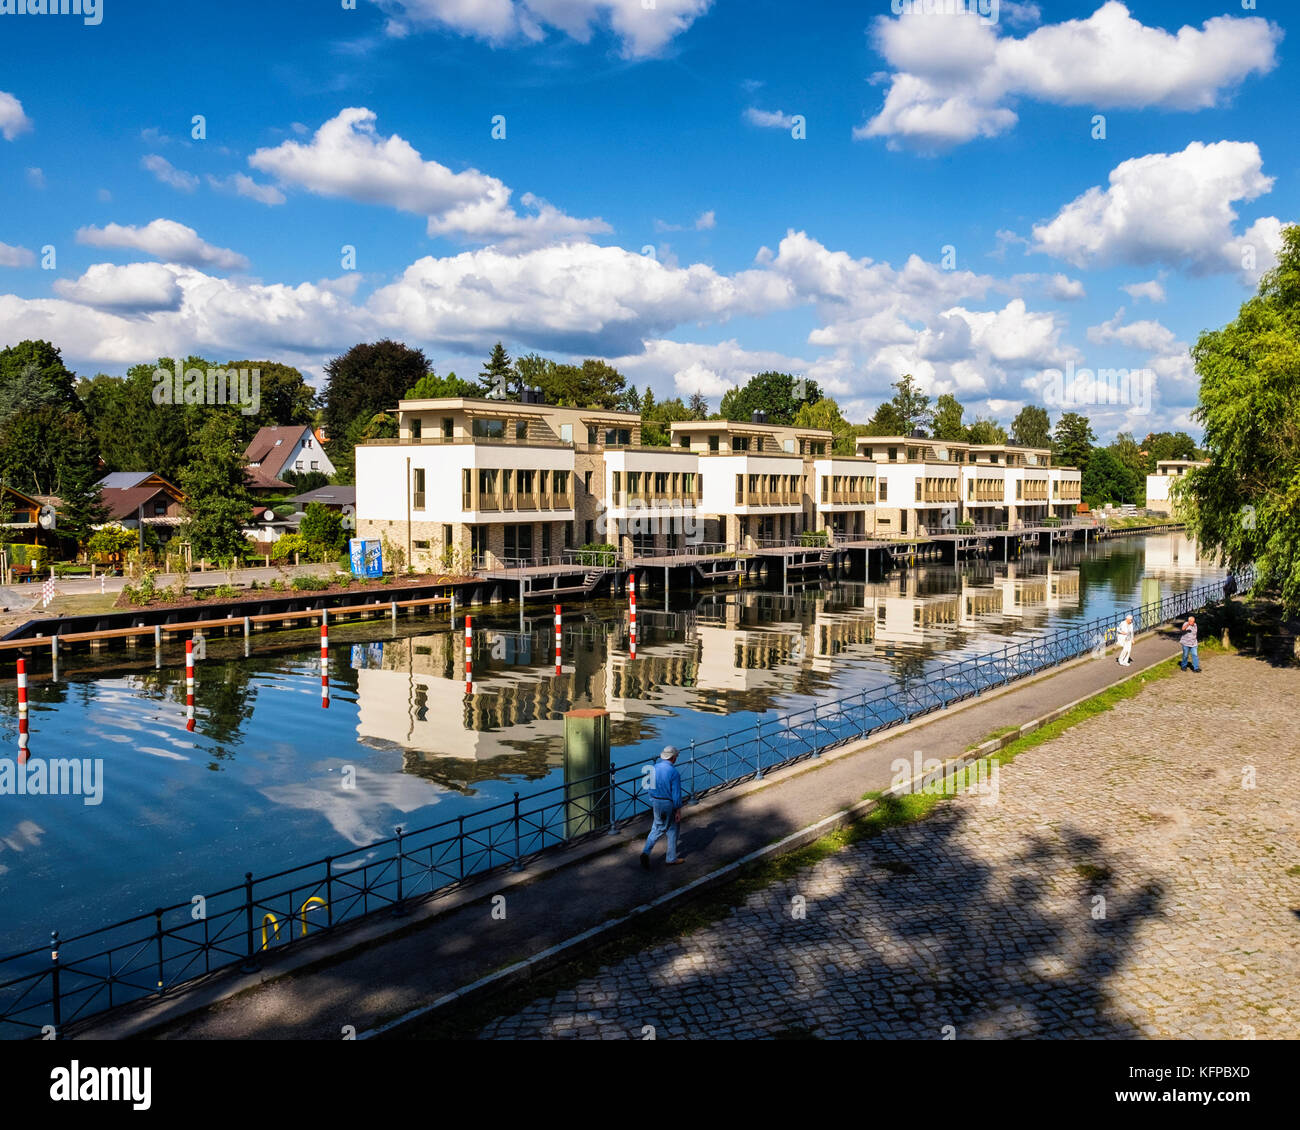 Berlin,Tegel lake,Tegeler see,Modern luxury new homes with roof terraces and boat mooring area on Humboldt island - Stock Image